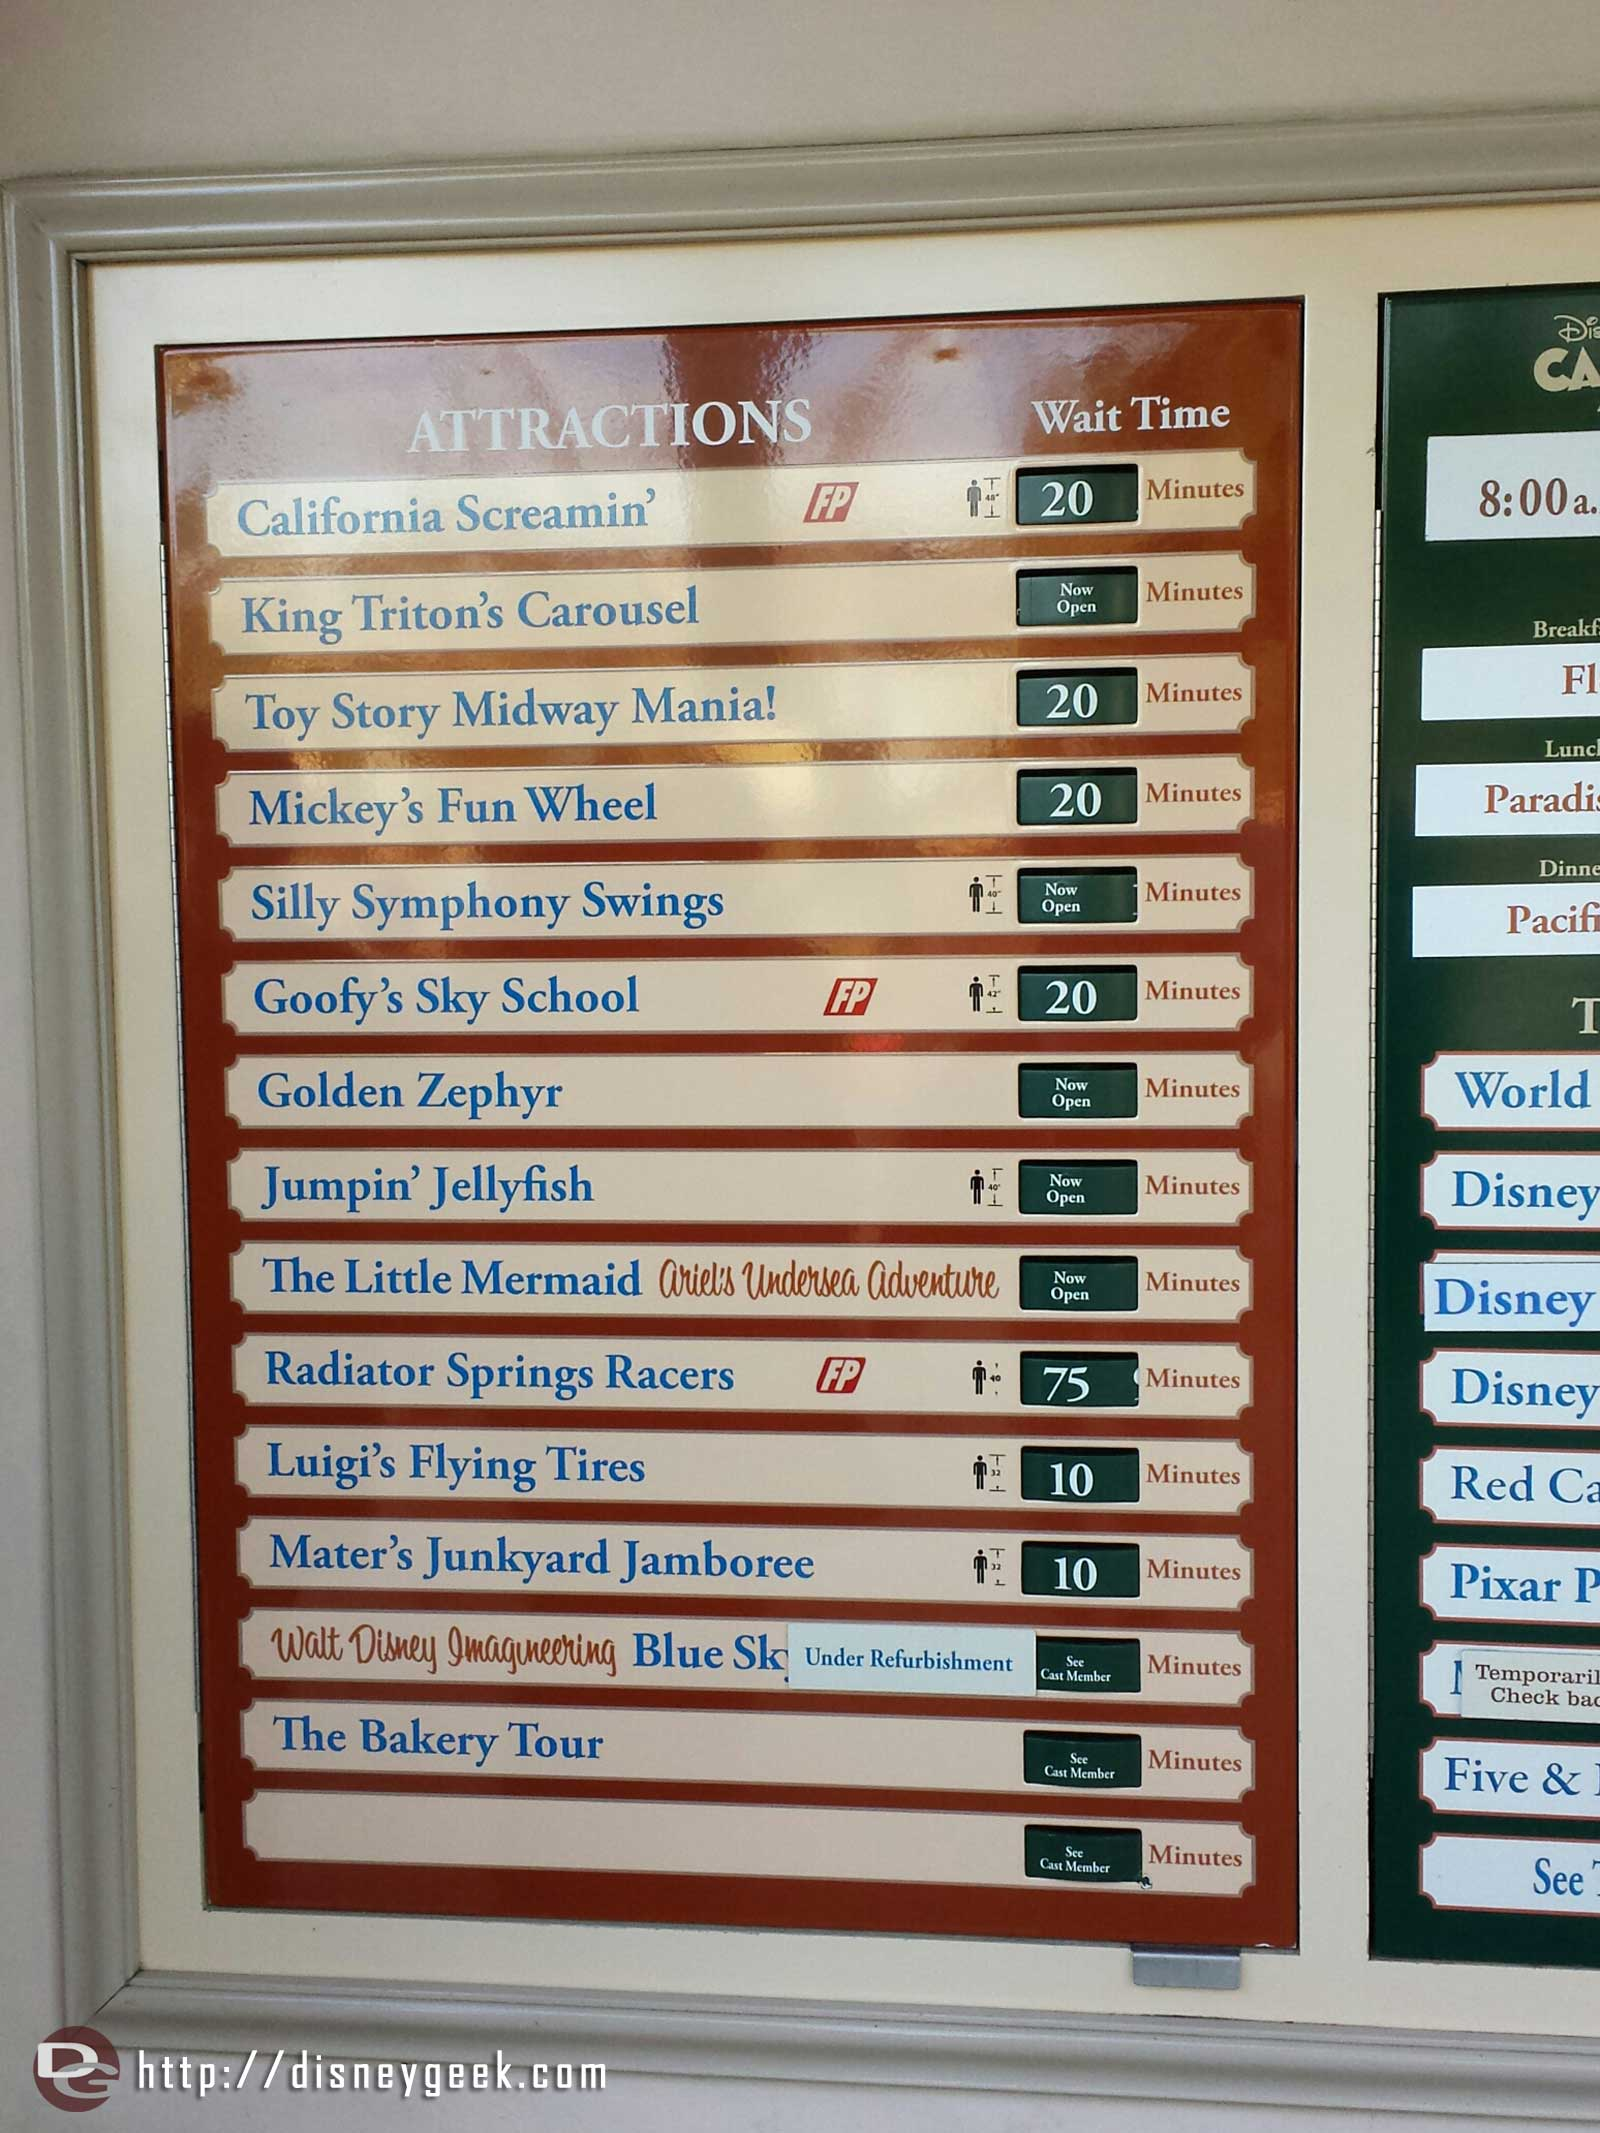 Disney California Adventure waits as of 1:05pm